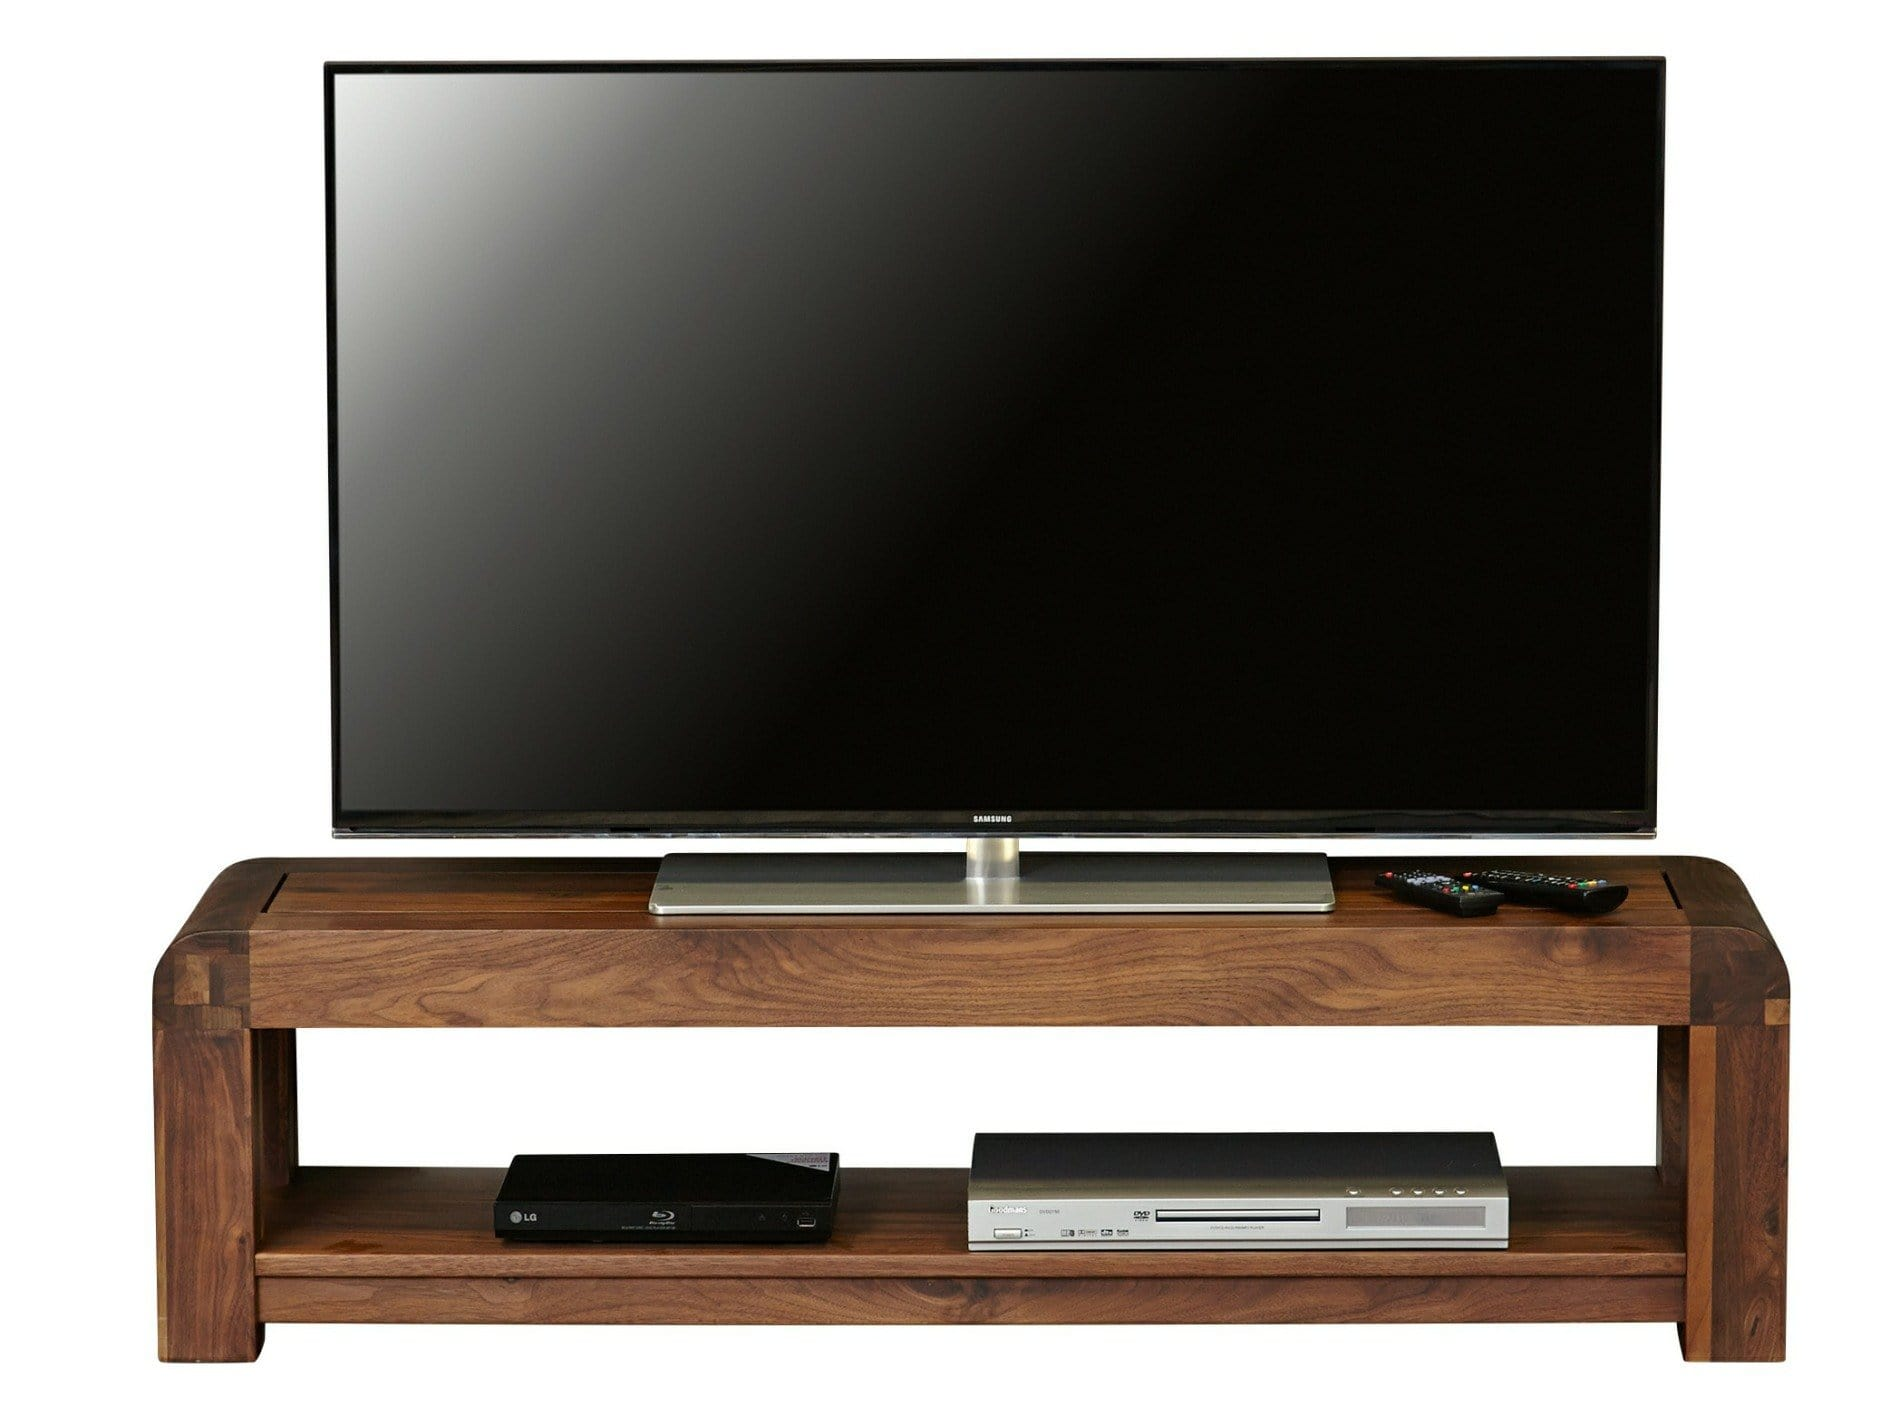 Dark wood TV stand from the Sola range, with bottom shelf